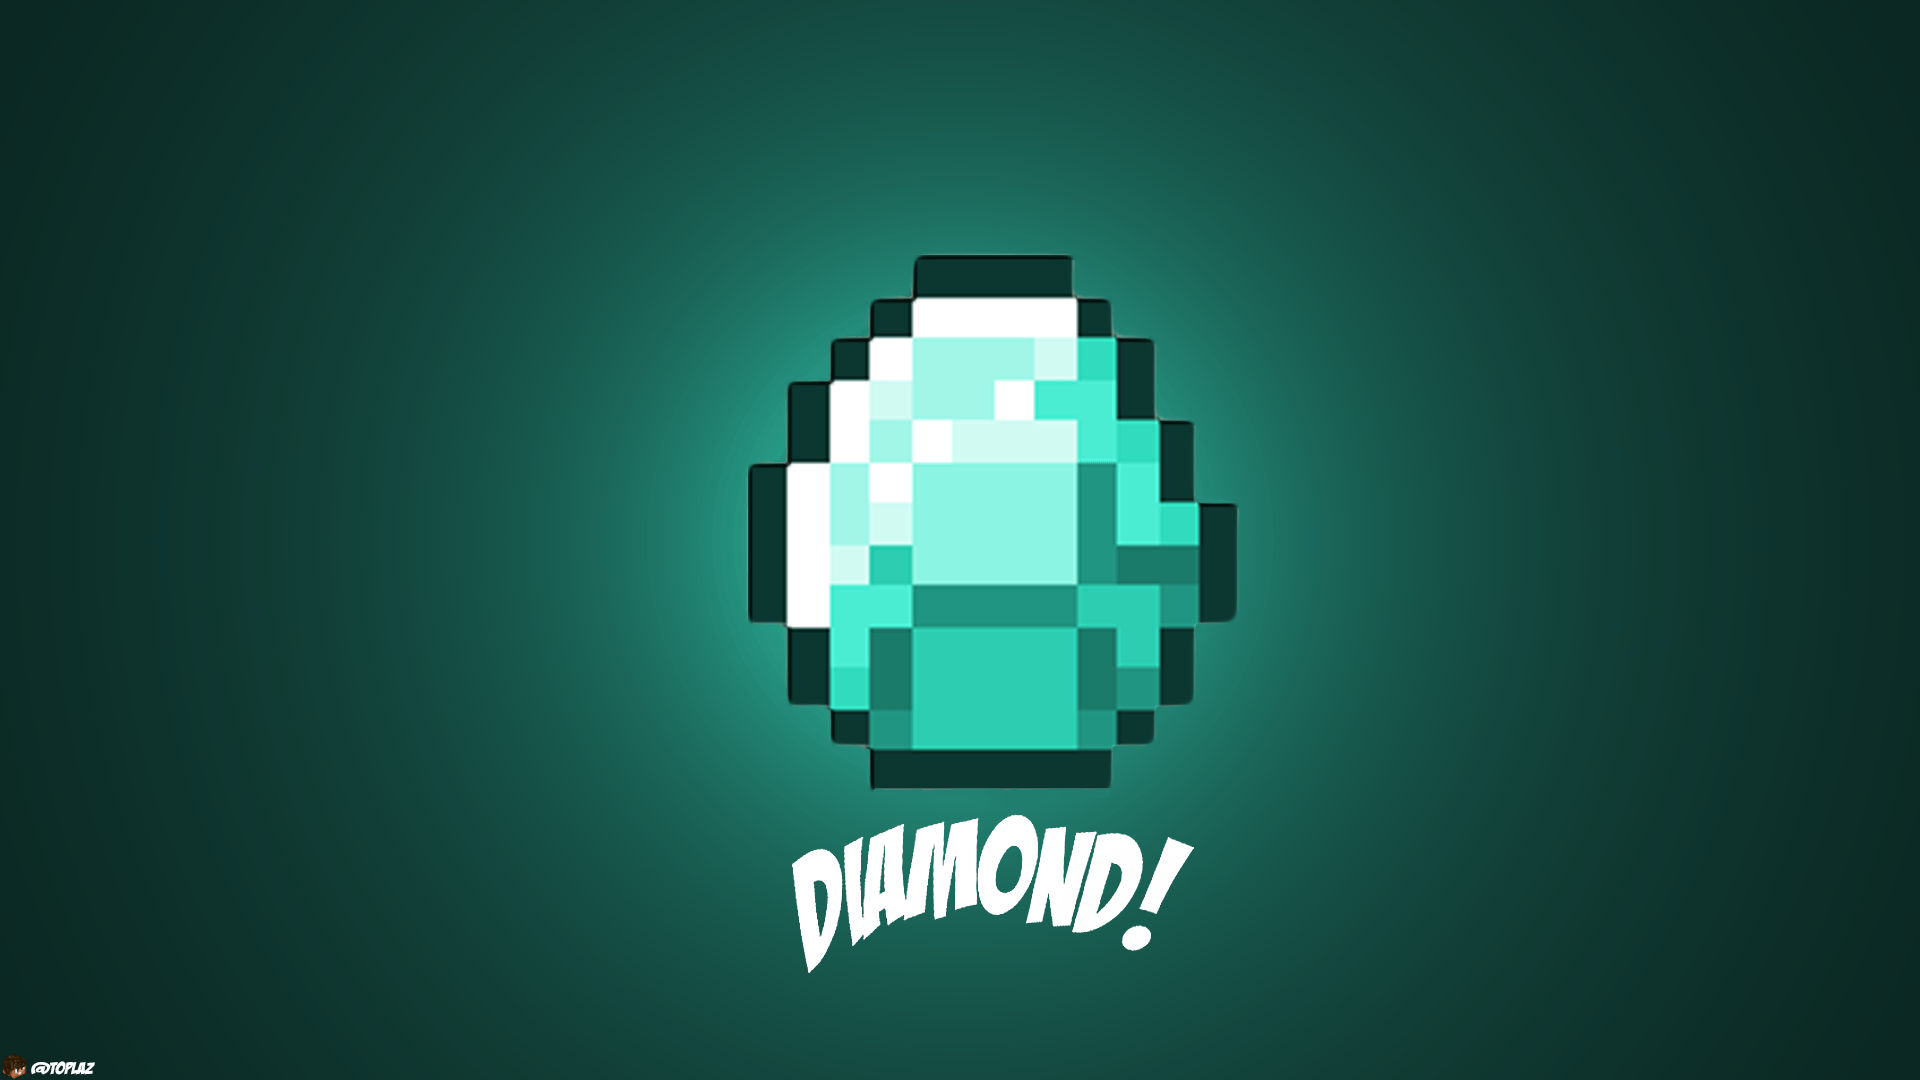 Minecraft wallpaper hd diamond